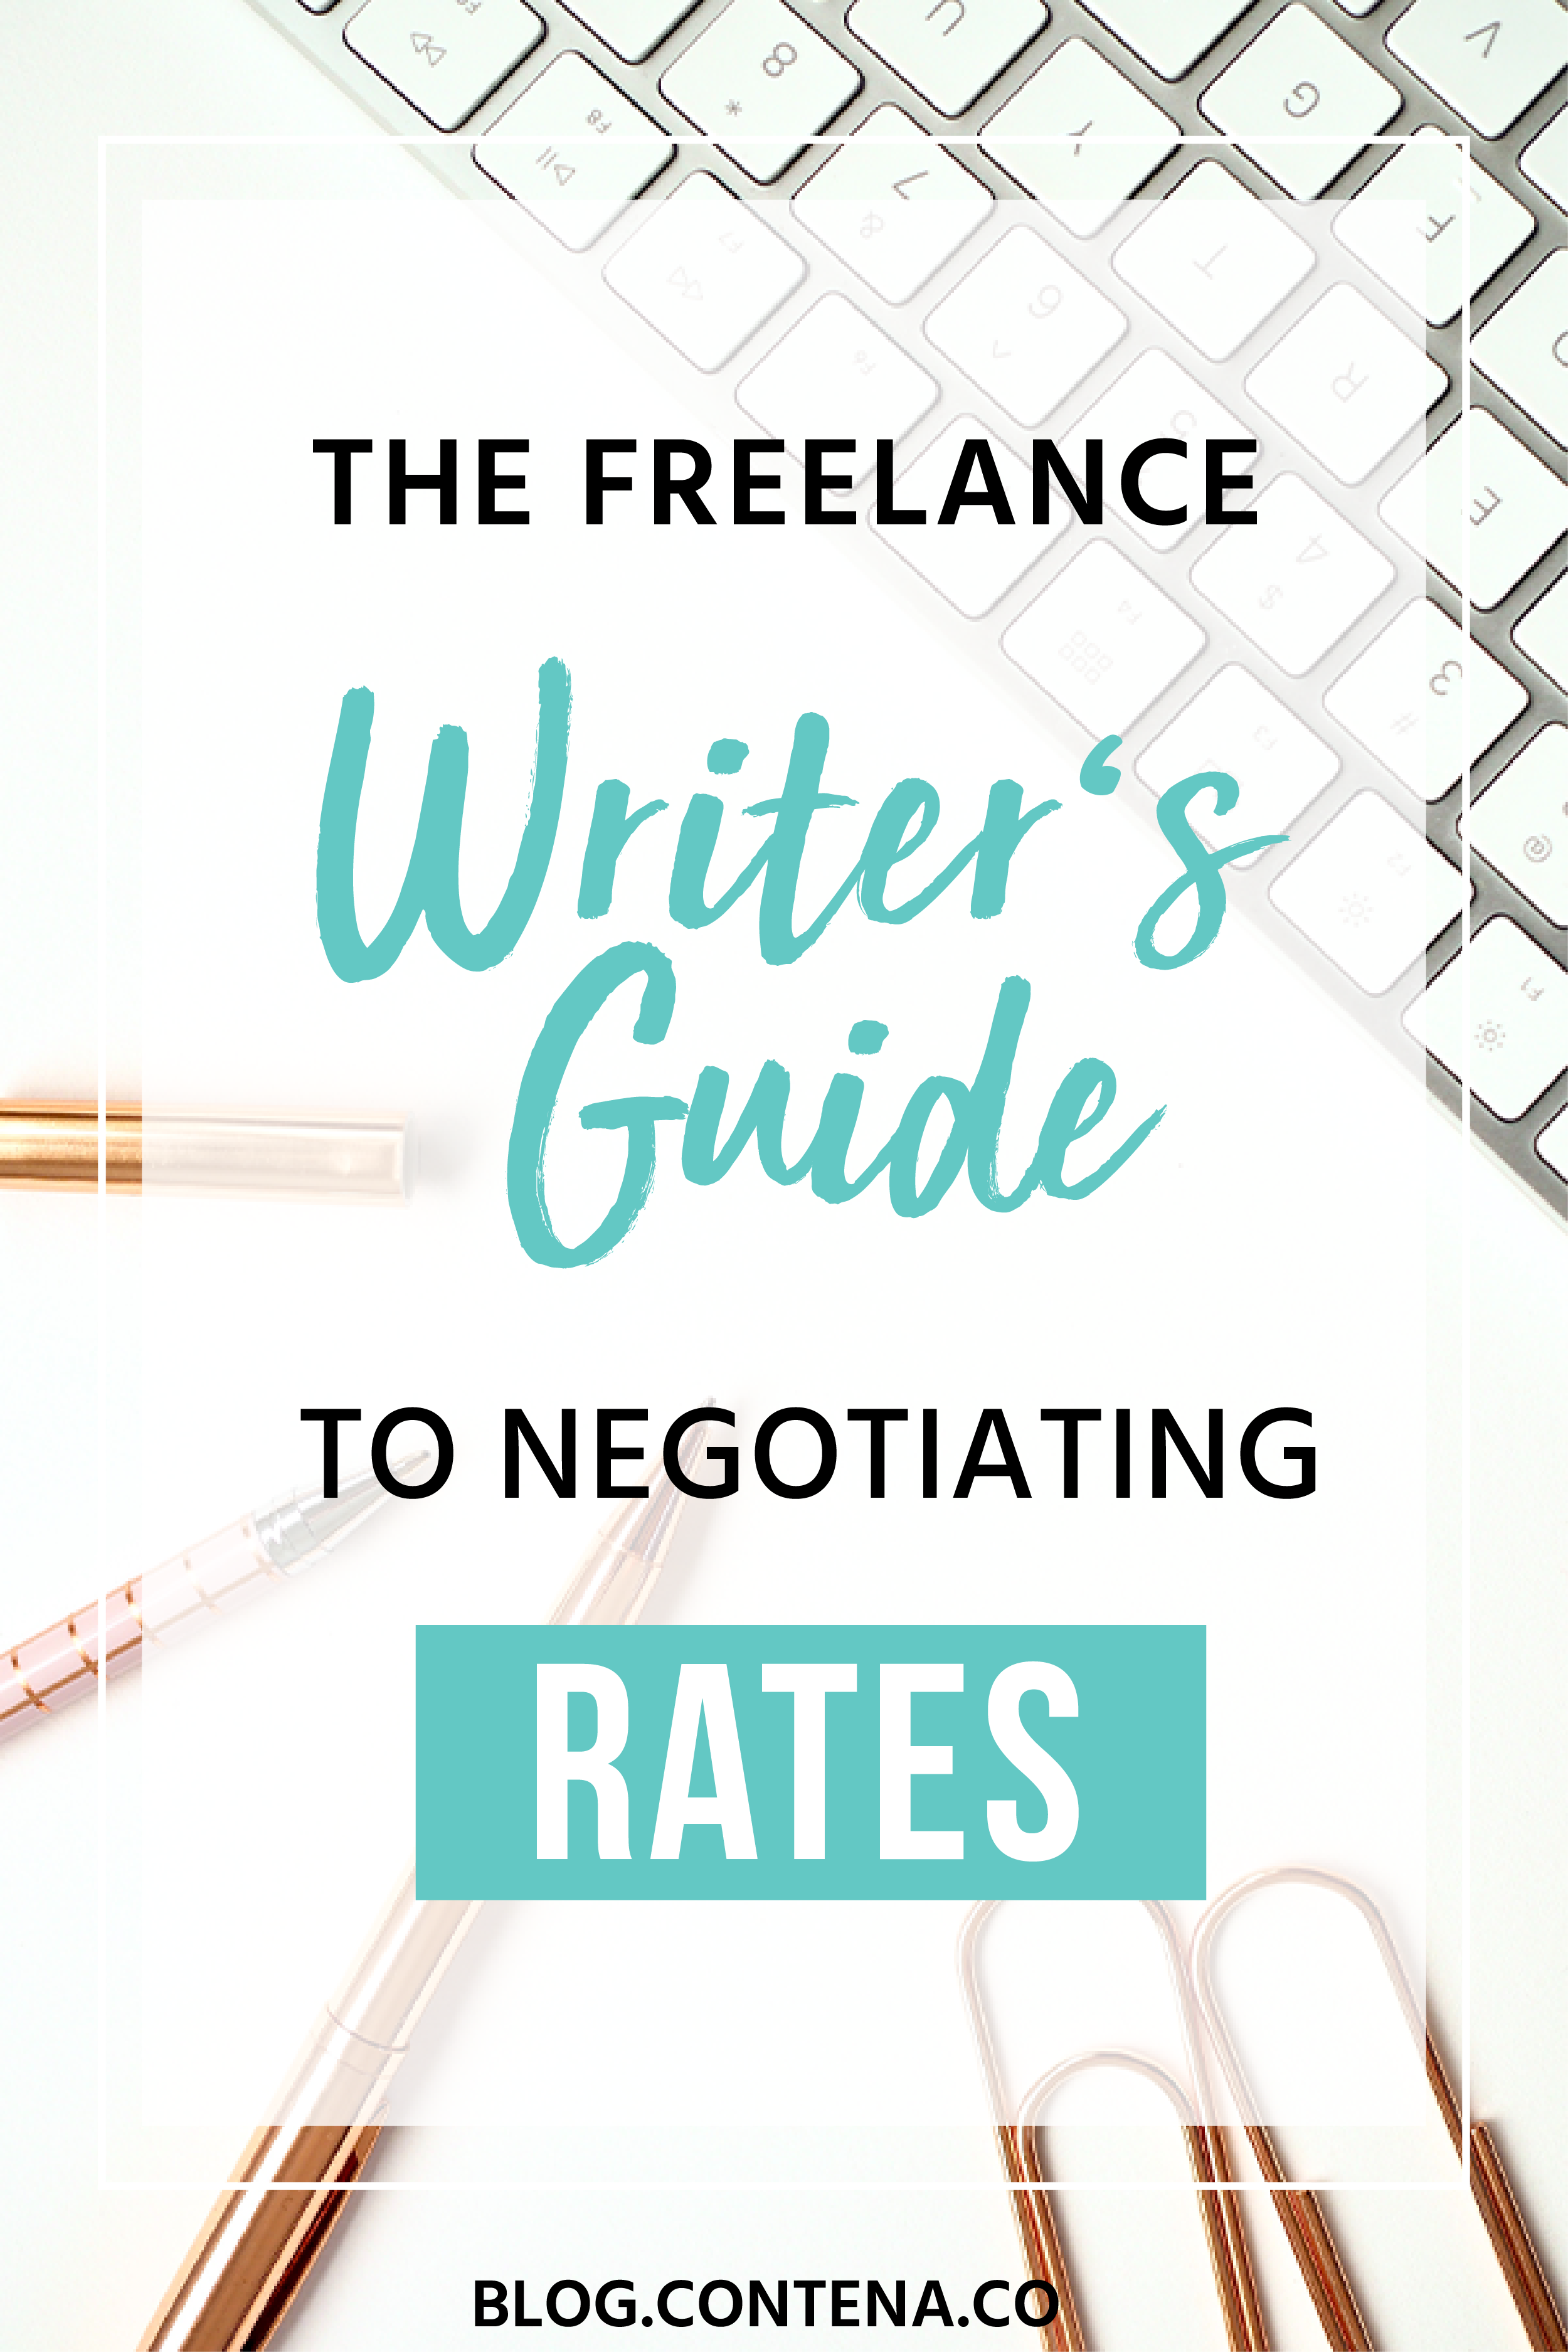 Writing services rates